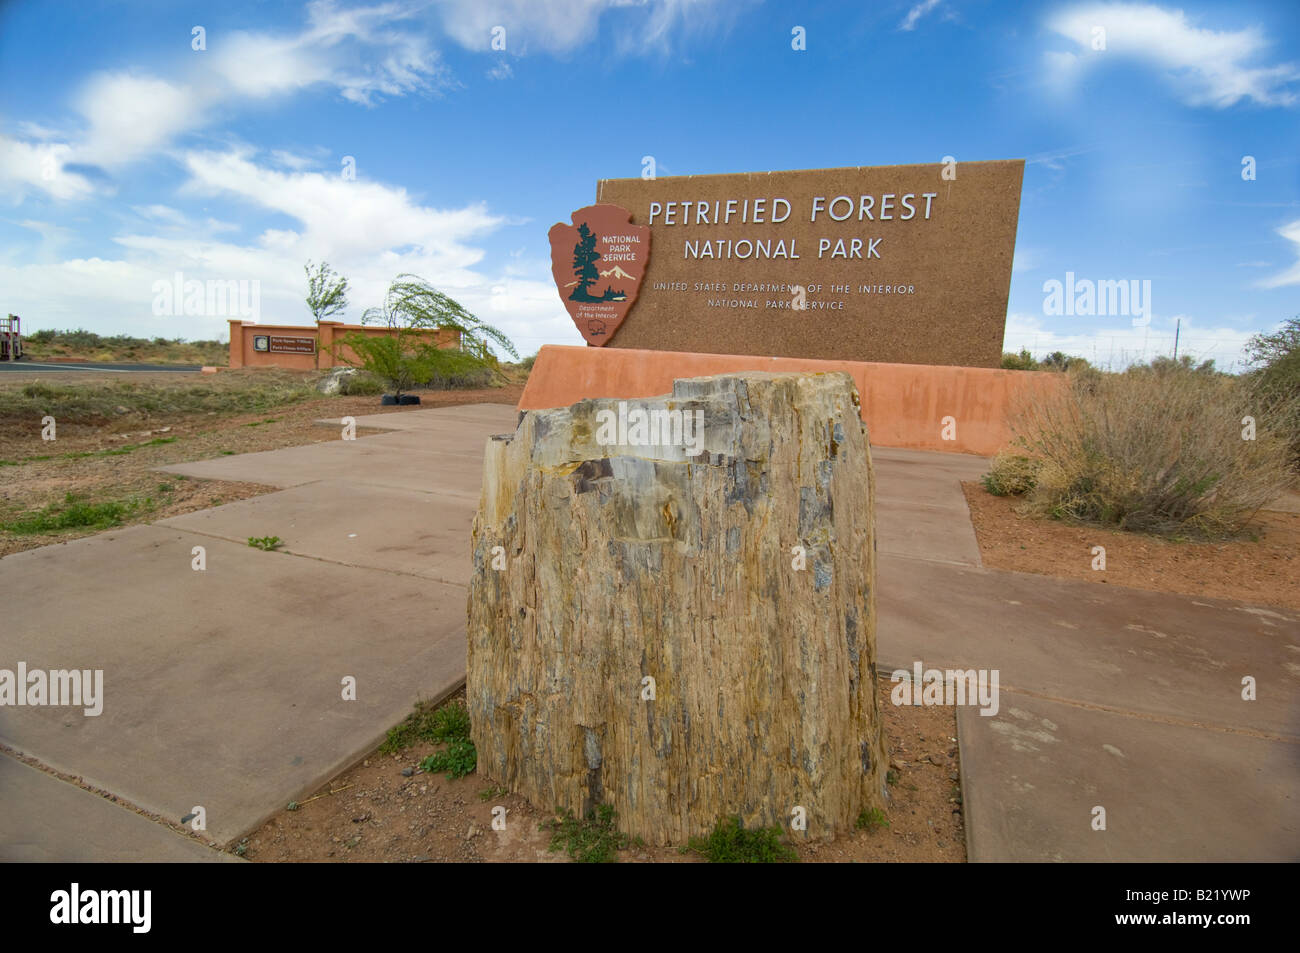 Petrified log in front of Petrified Forest National Park sign - Stock Image